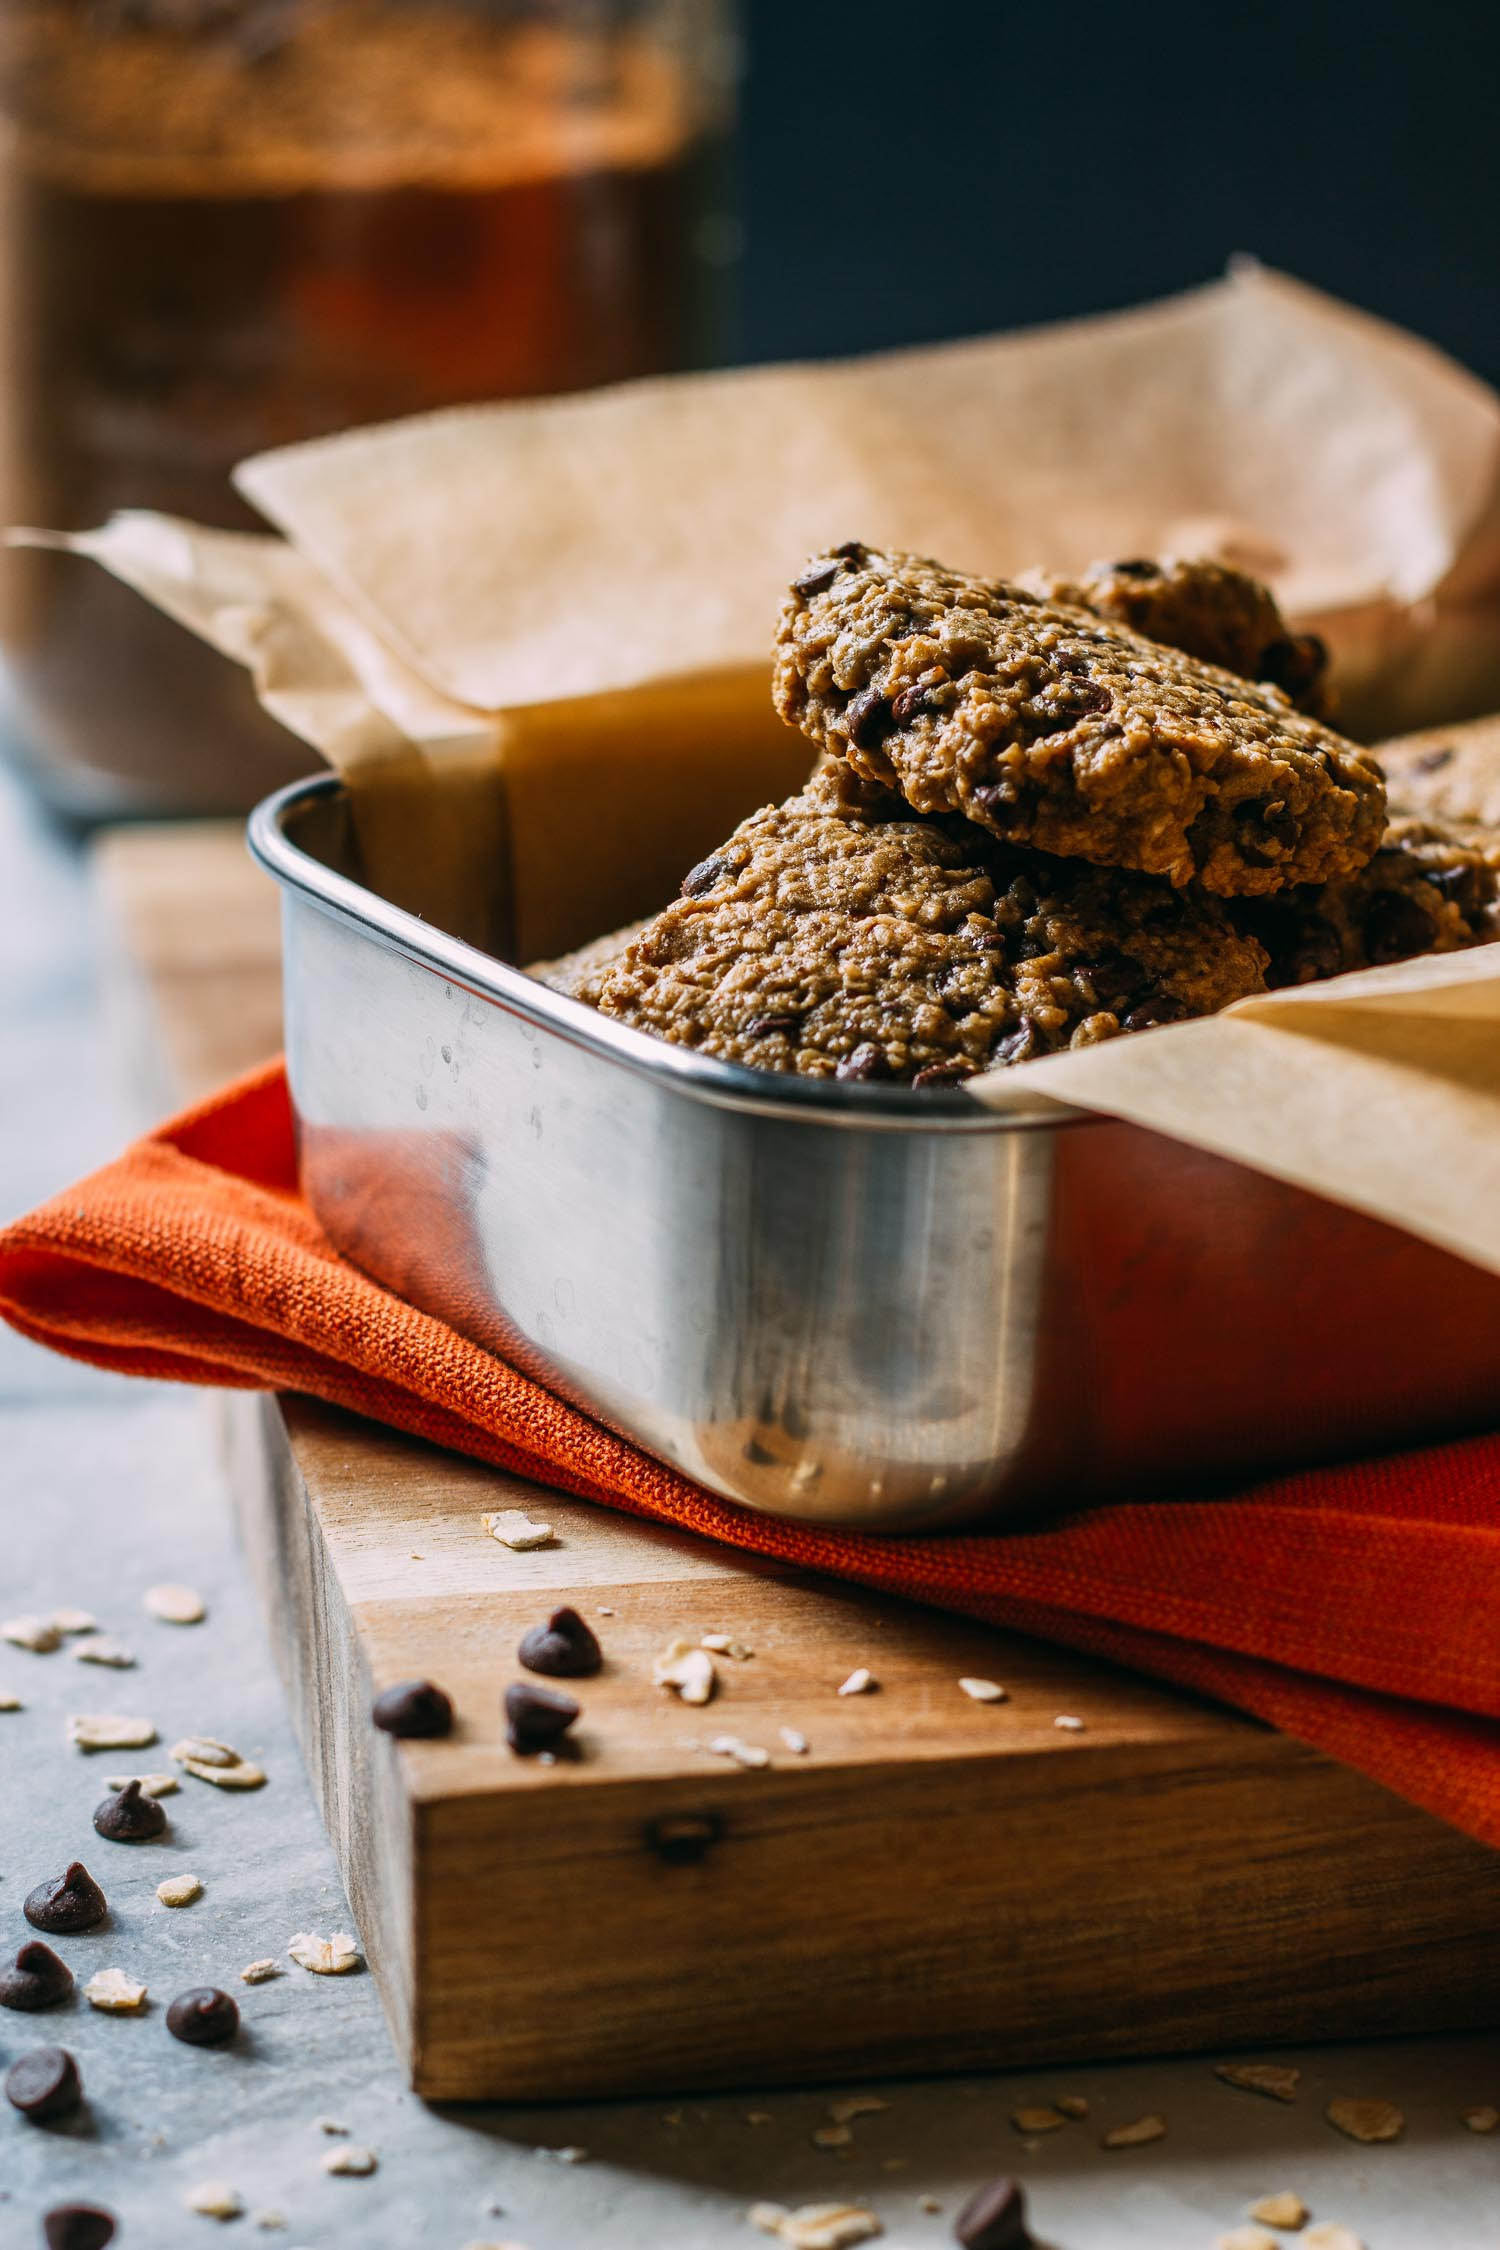 Chewy Chocolate Chip Oatmeal Cookies #cardamom #wfpb #recipe #cookies #aquafaba #treats #gifts #homemade #sweets #sunflower seeds #vegan #wfpbno #recipe